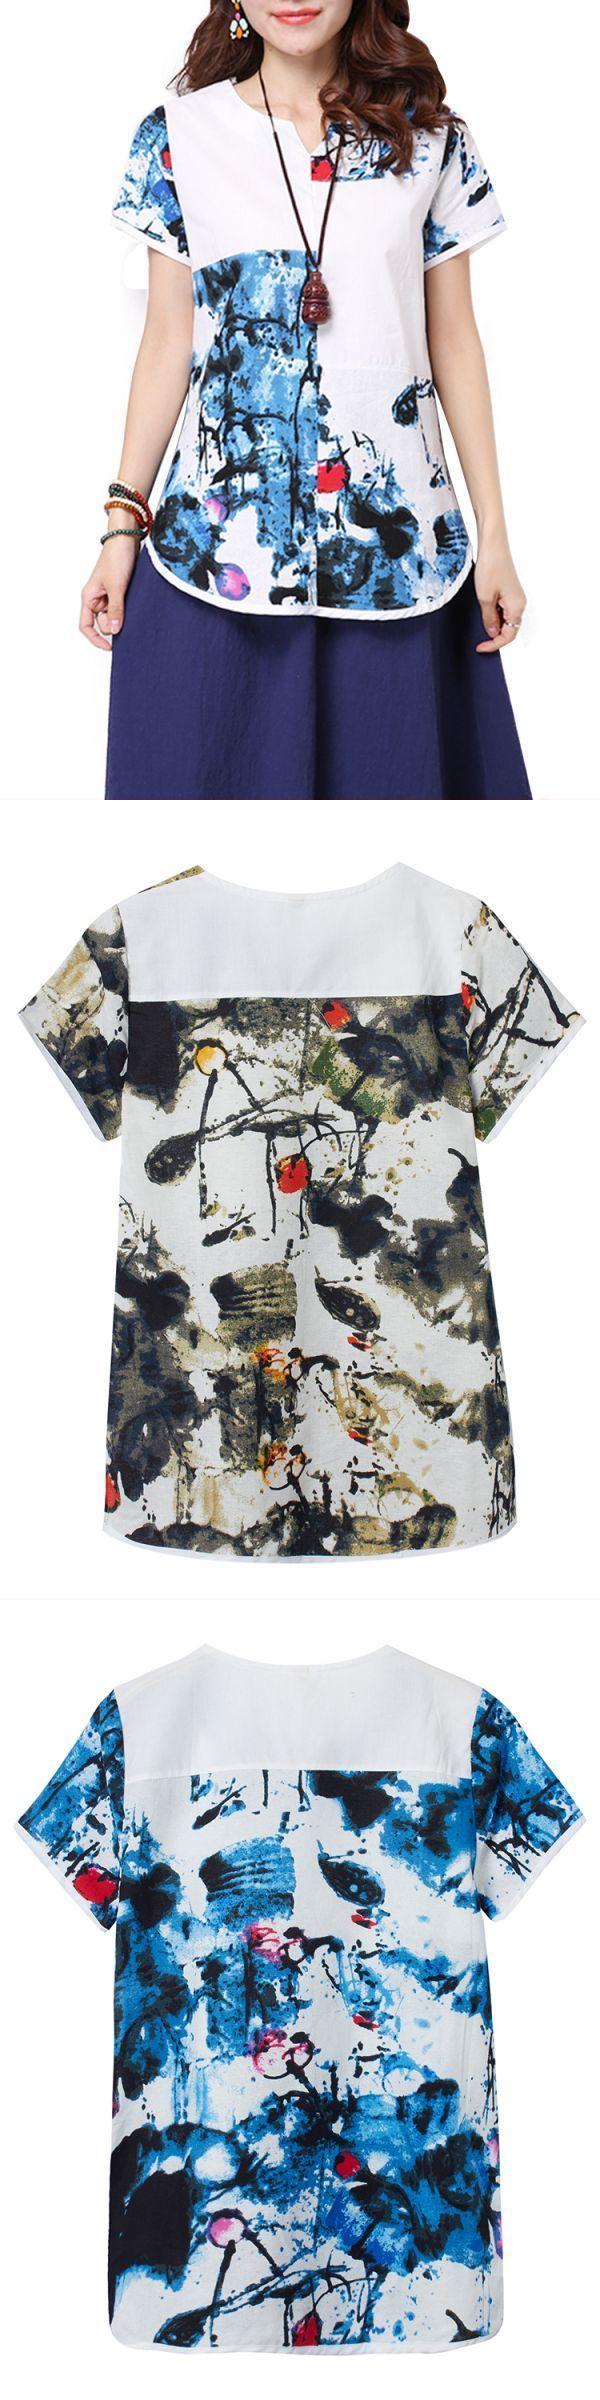 Nike running t shirts women#8217;s vintage loose floral printed patchwork linen women t-shirt #100 #cotton #t #shirts #womens #oversized #t #shirt #girl #t #shirt #equestria #girl #womens #j #dilla #t #shirts